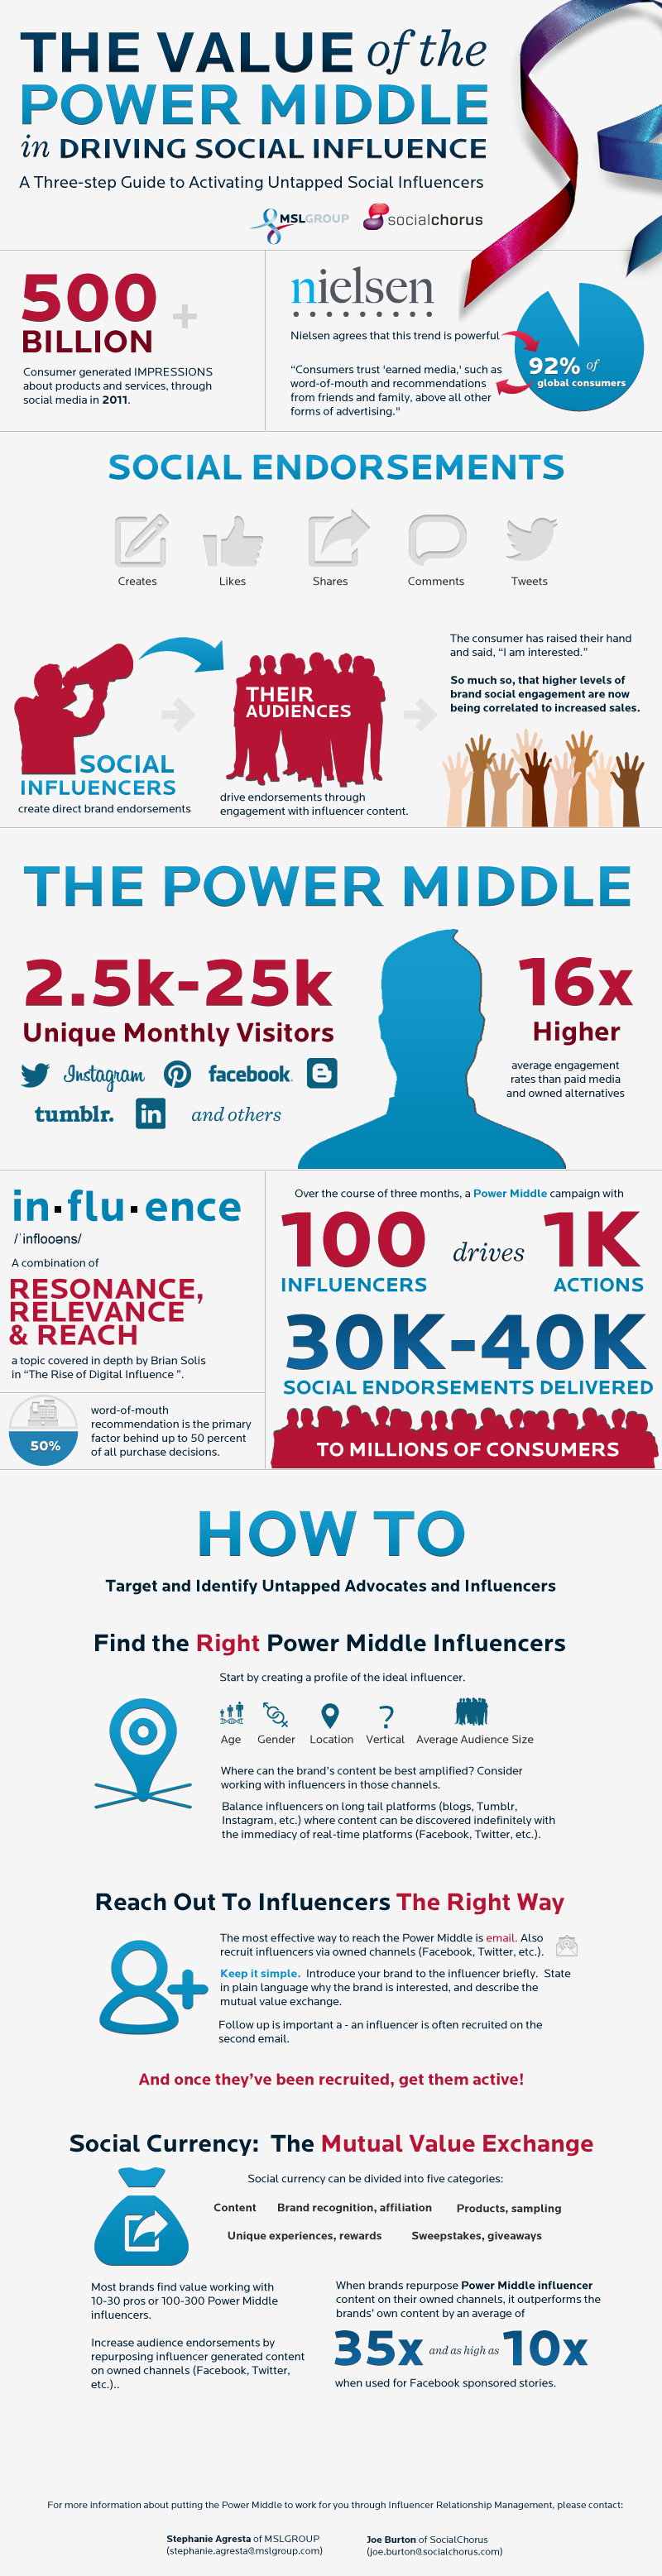 The Value of the Power Middle In Driving Social Influence - Nielsen